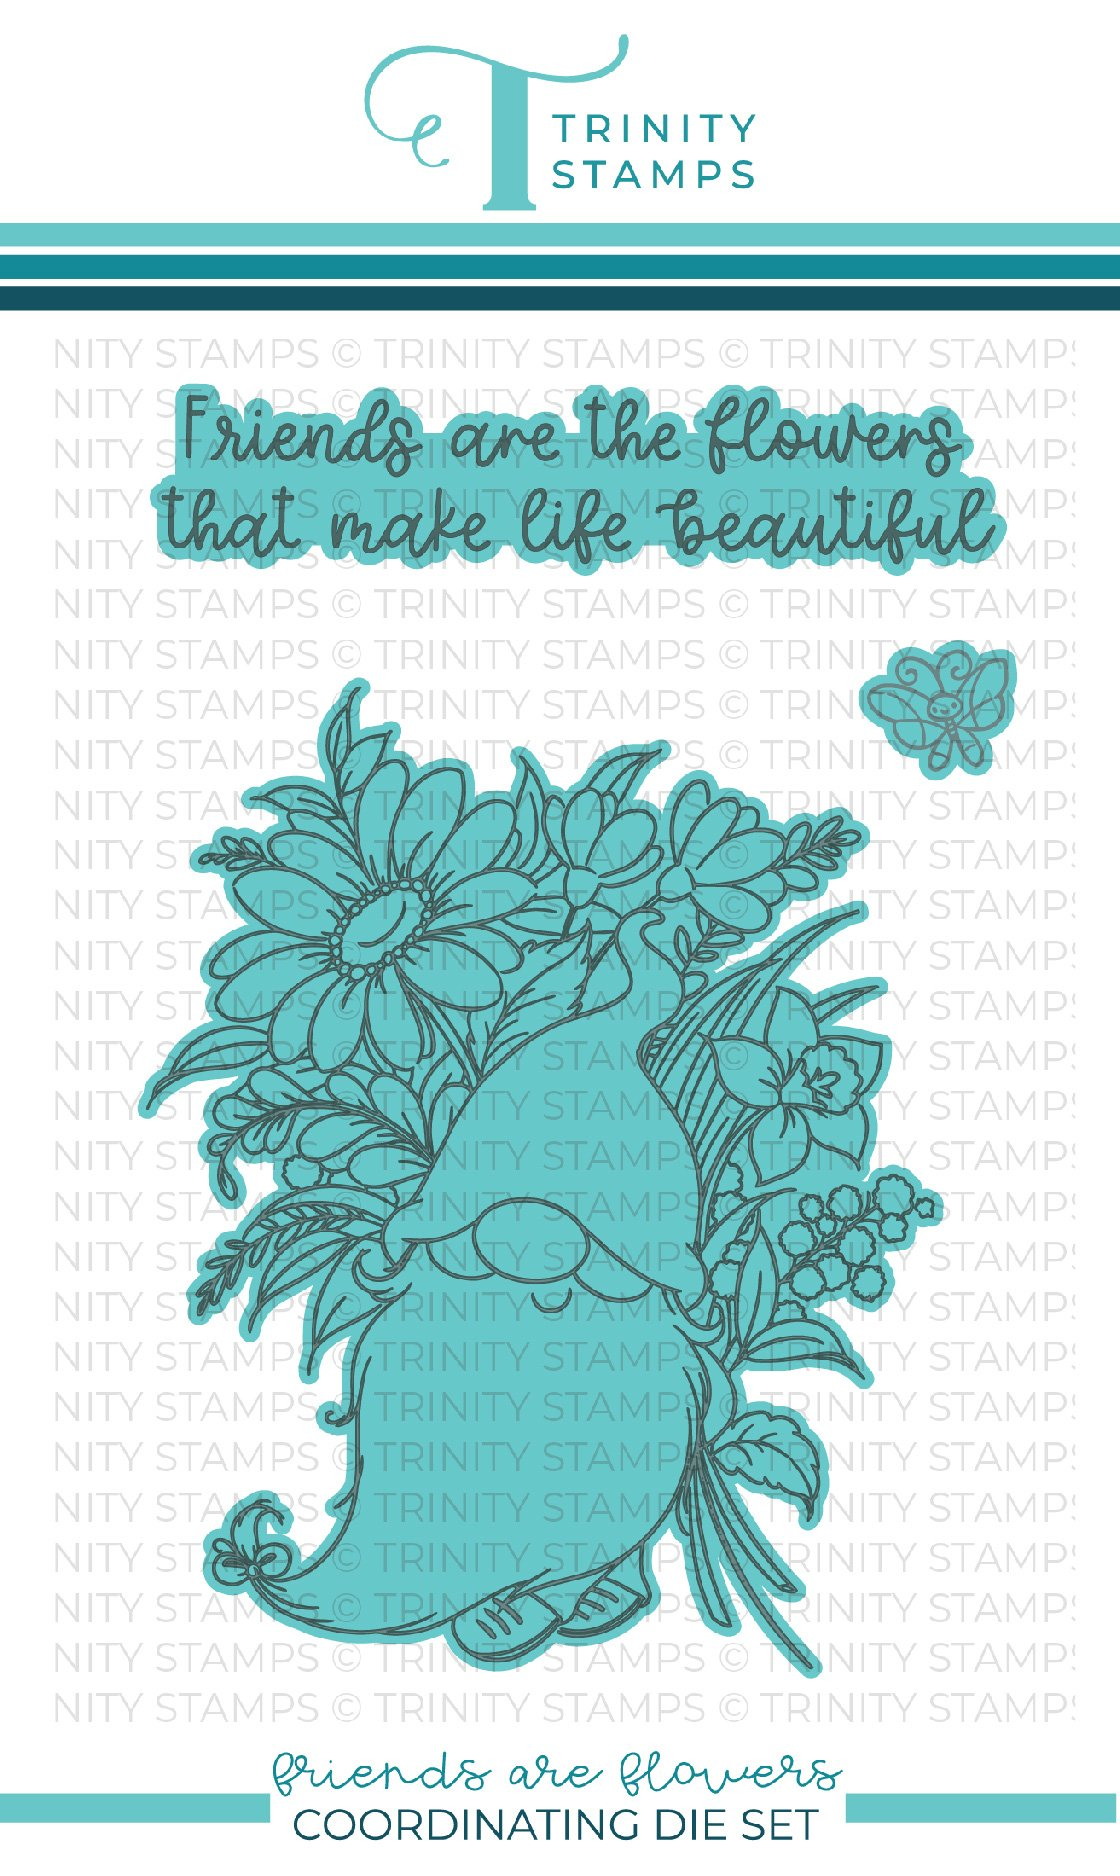 *NEW* - Trinity Stamps - Friends are Flowers coordinating die set